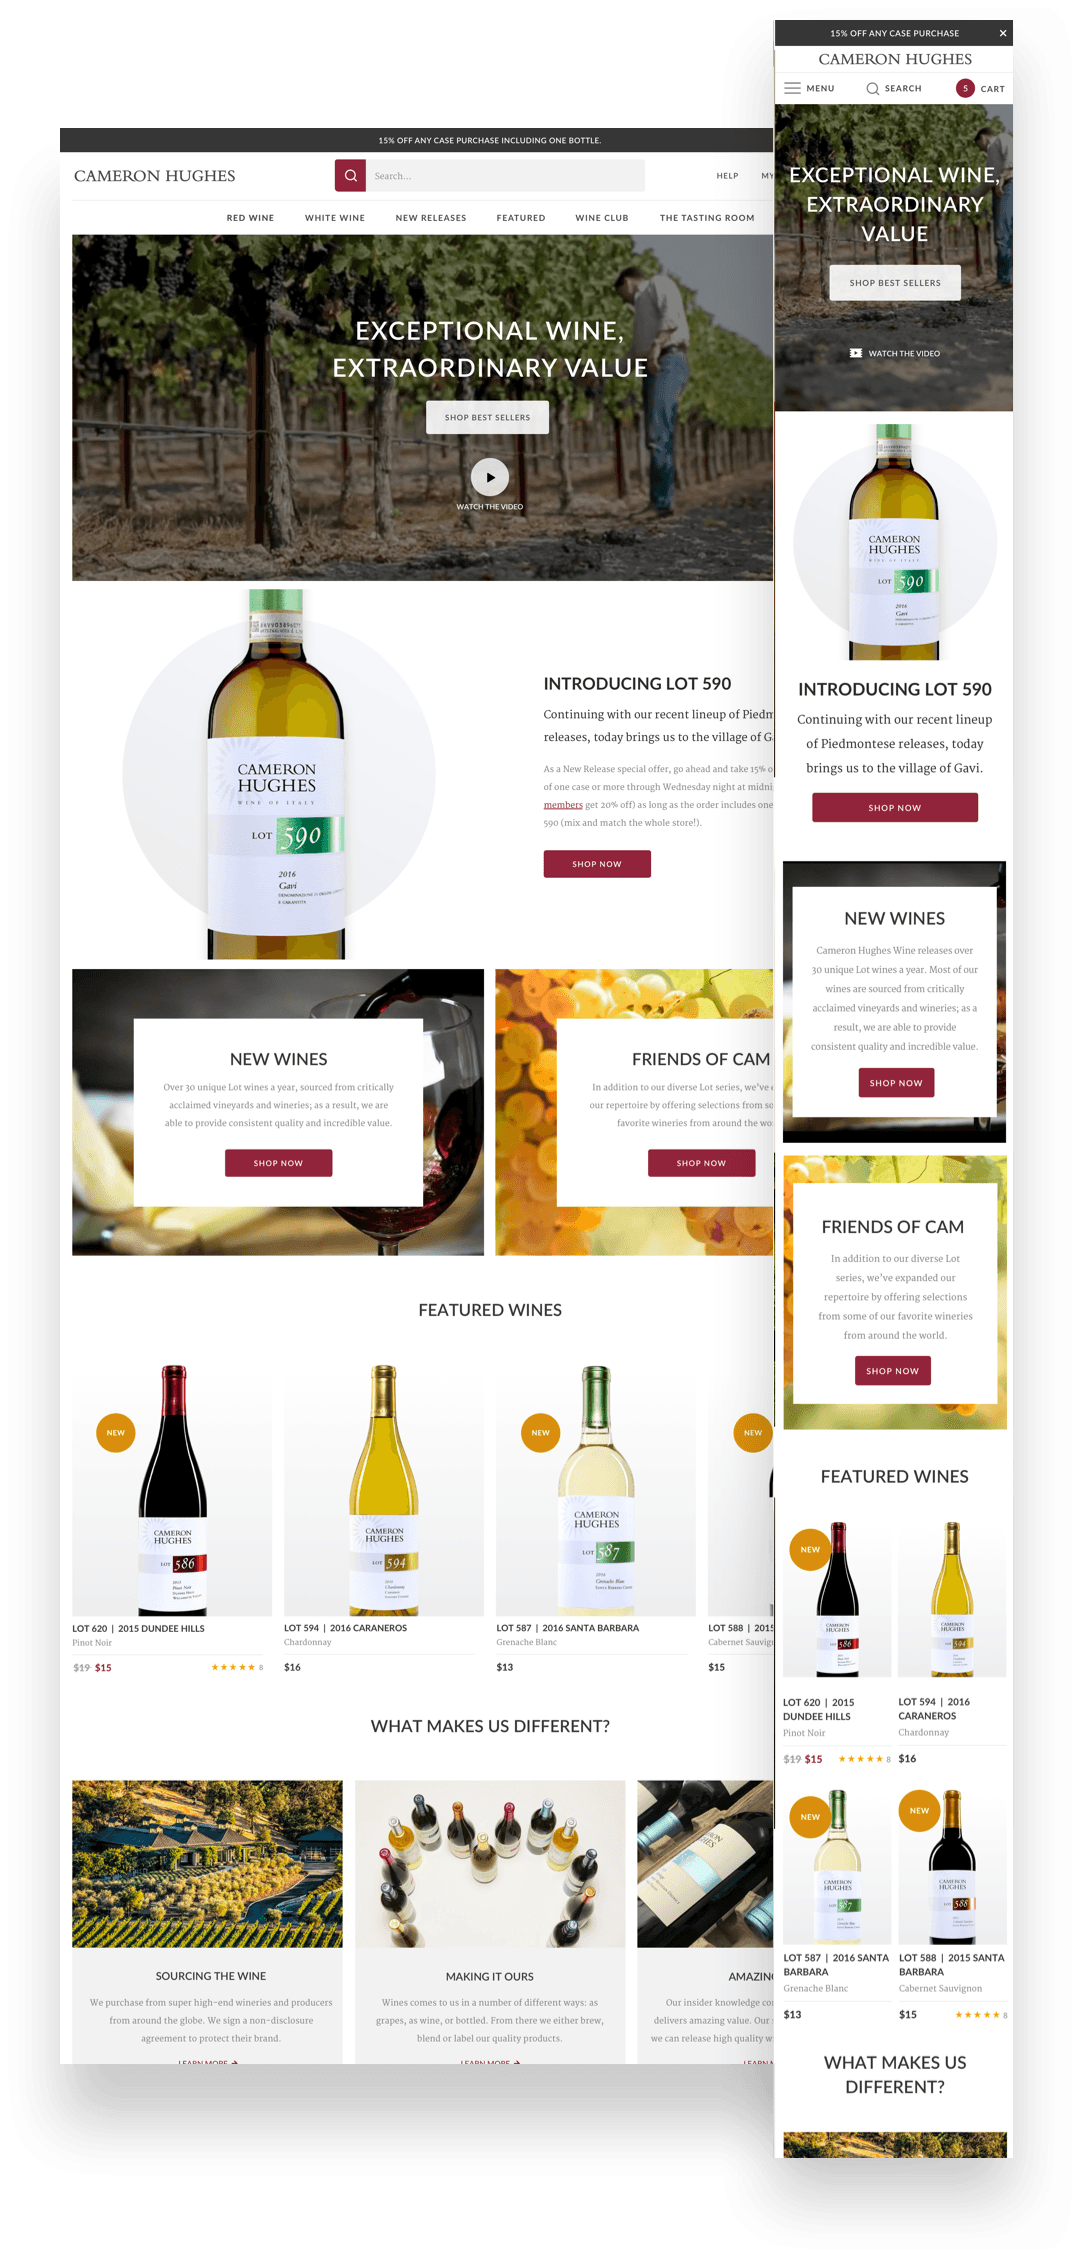 Cameron Hughes Wine - The Solution Image